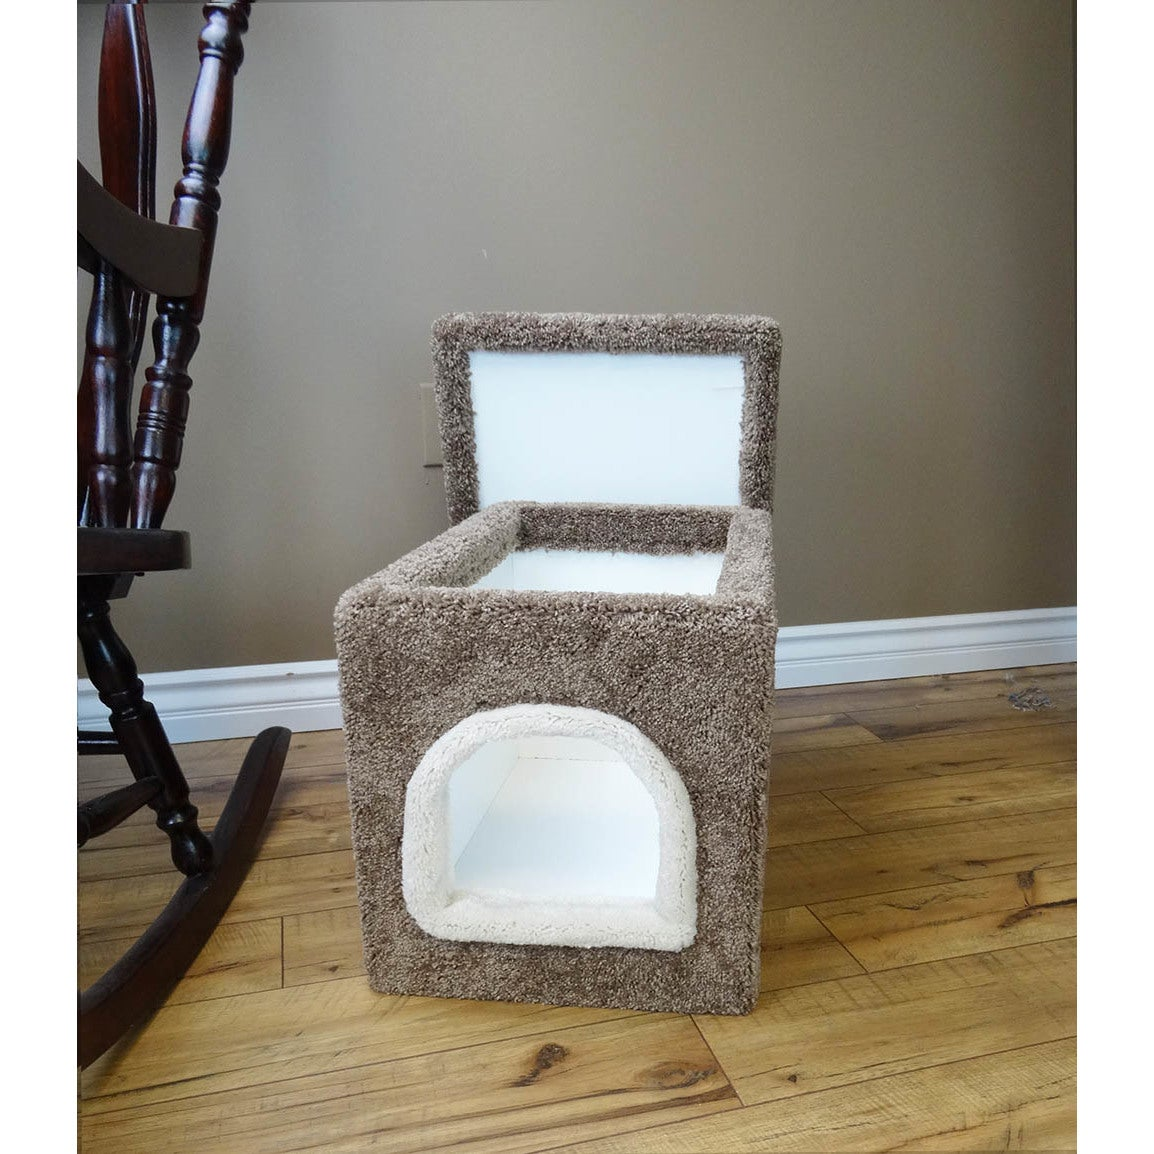 New Cat Condos Premier Small Litter Box Enclosure (Brown)